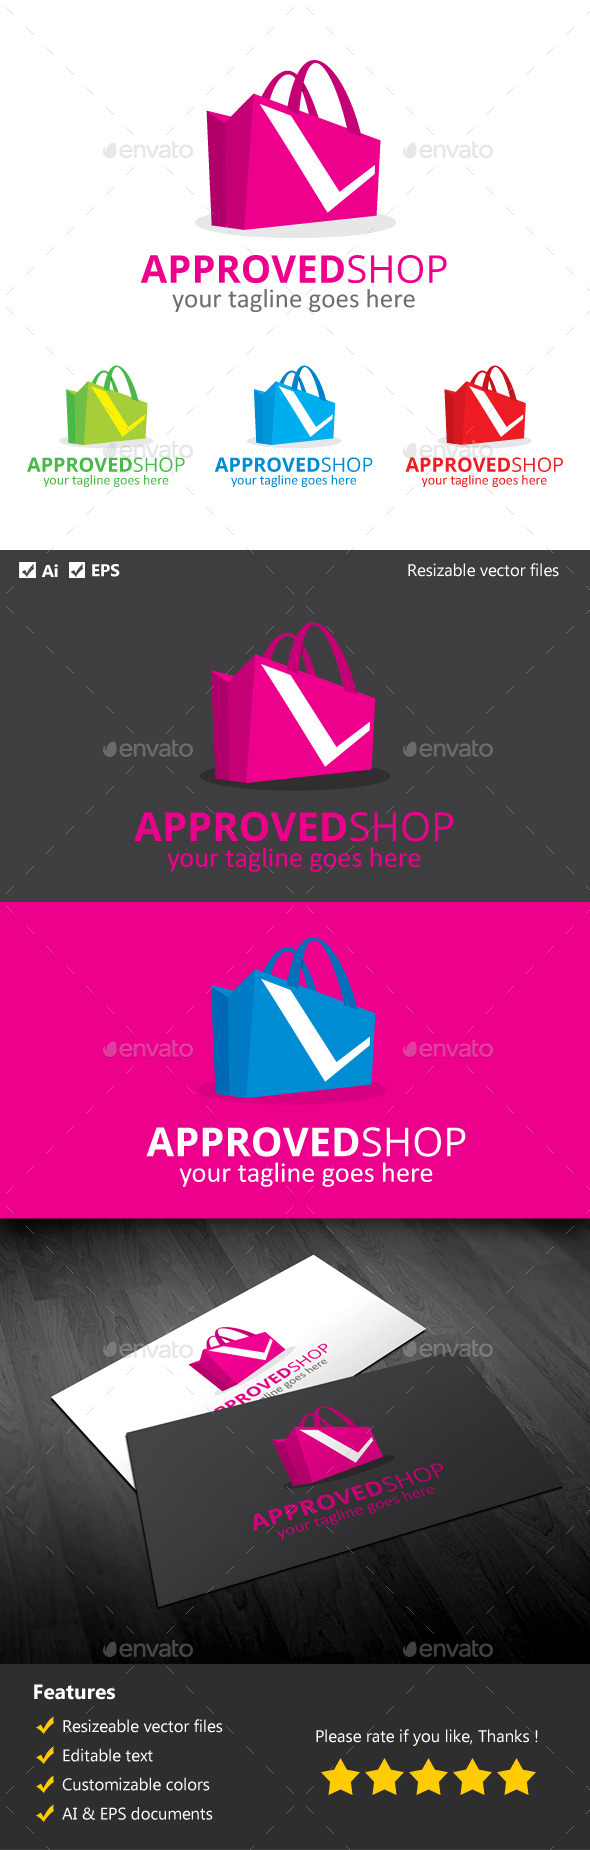 Approved Shop